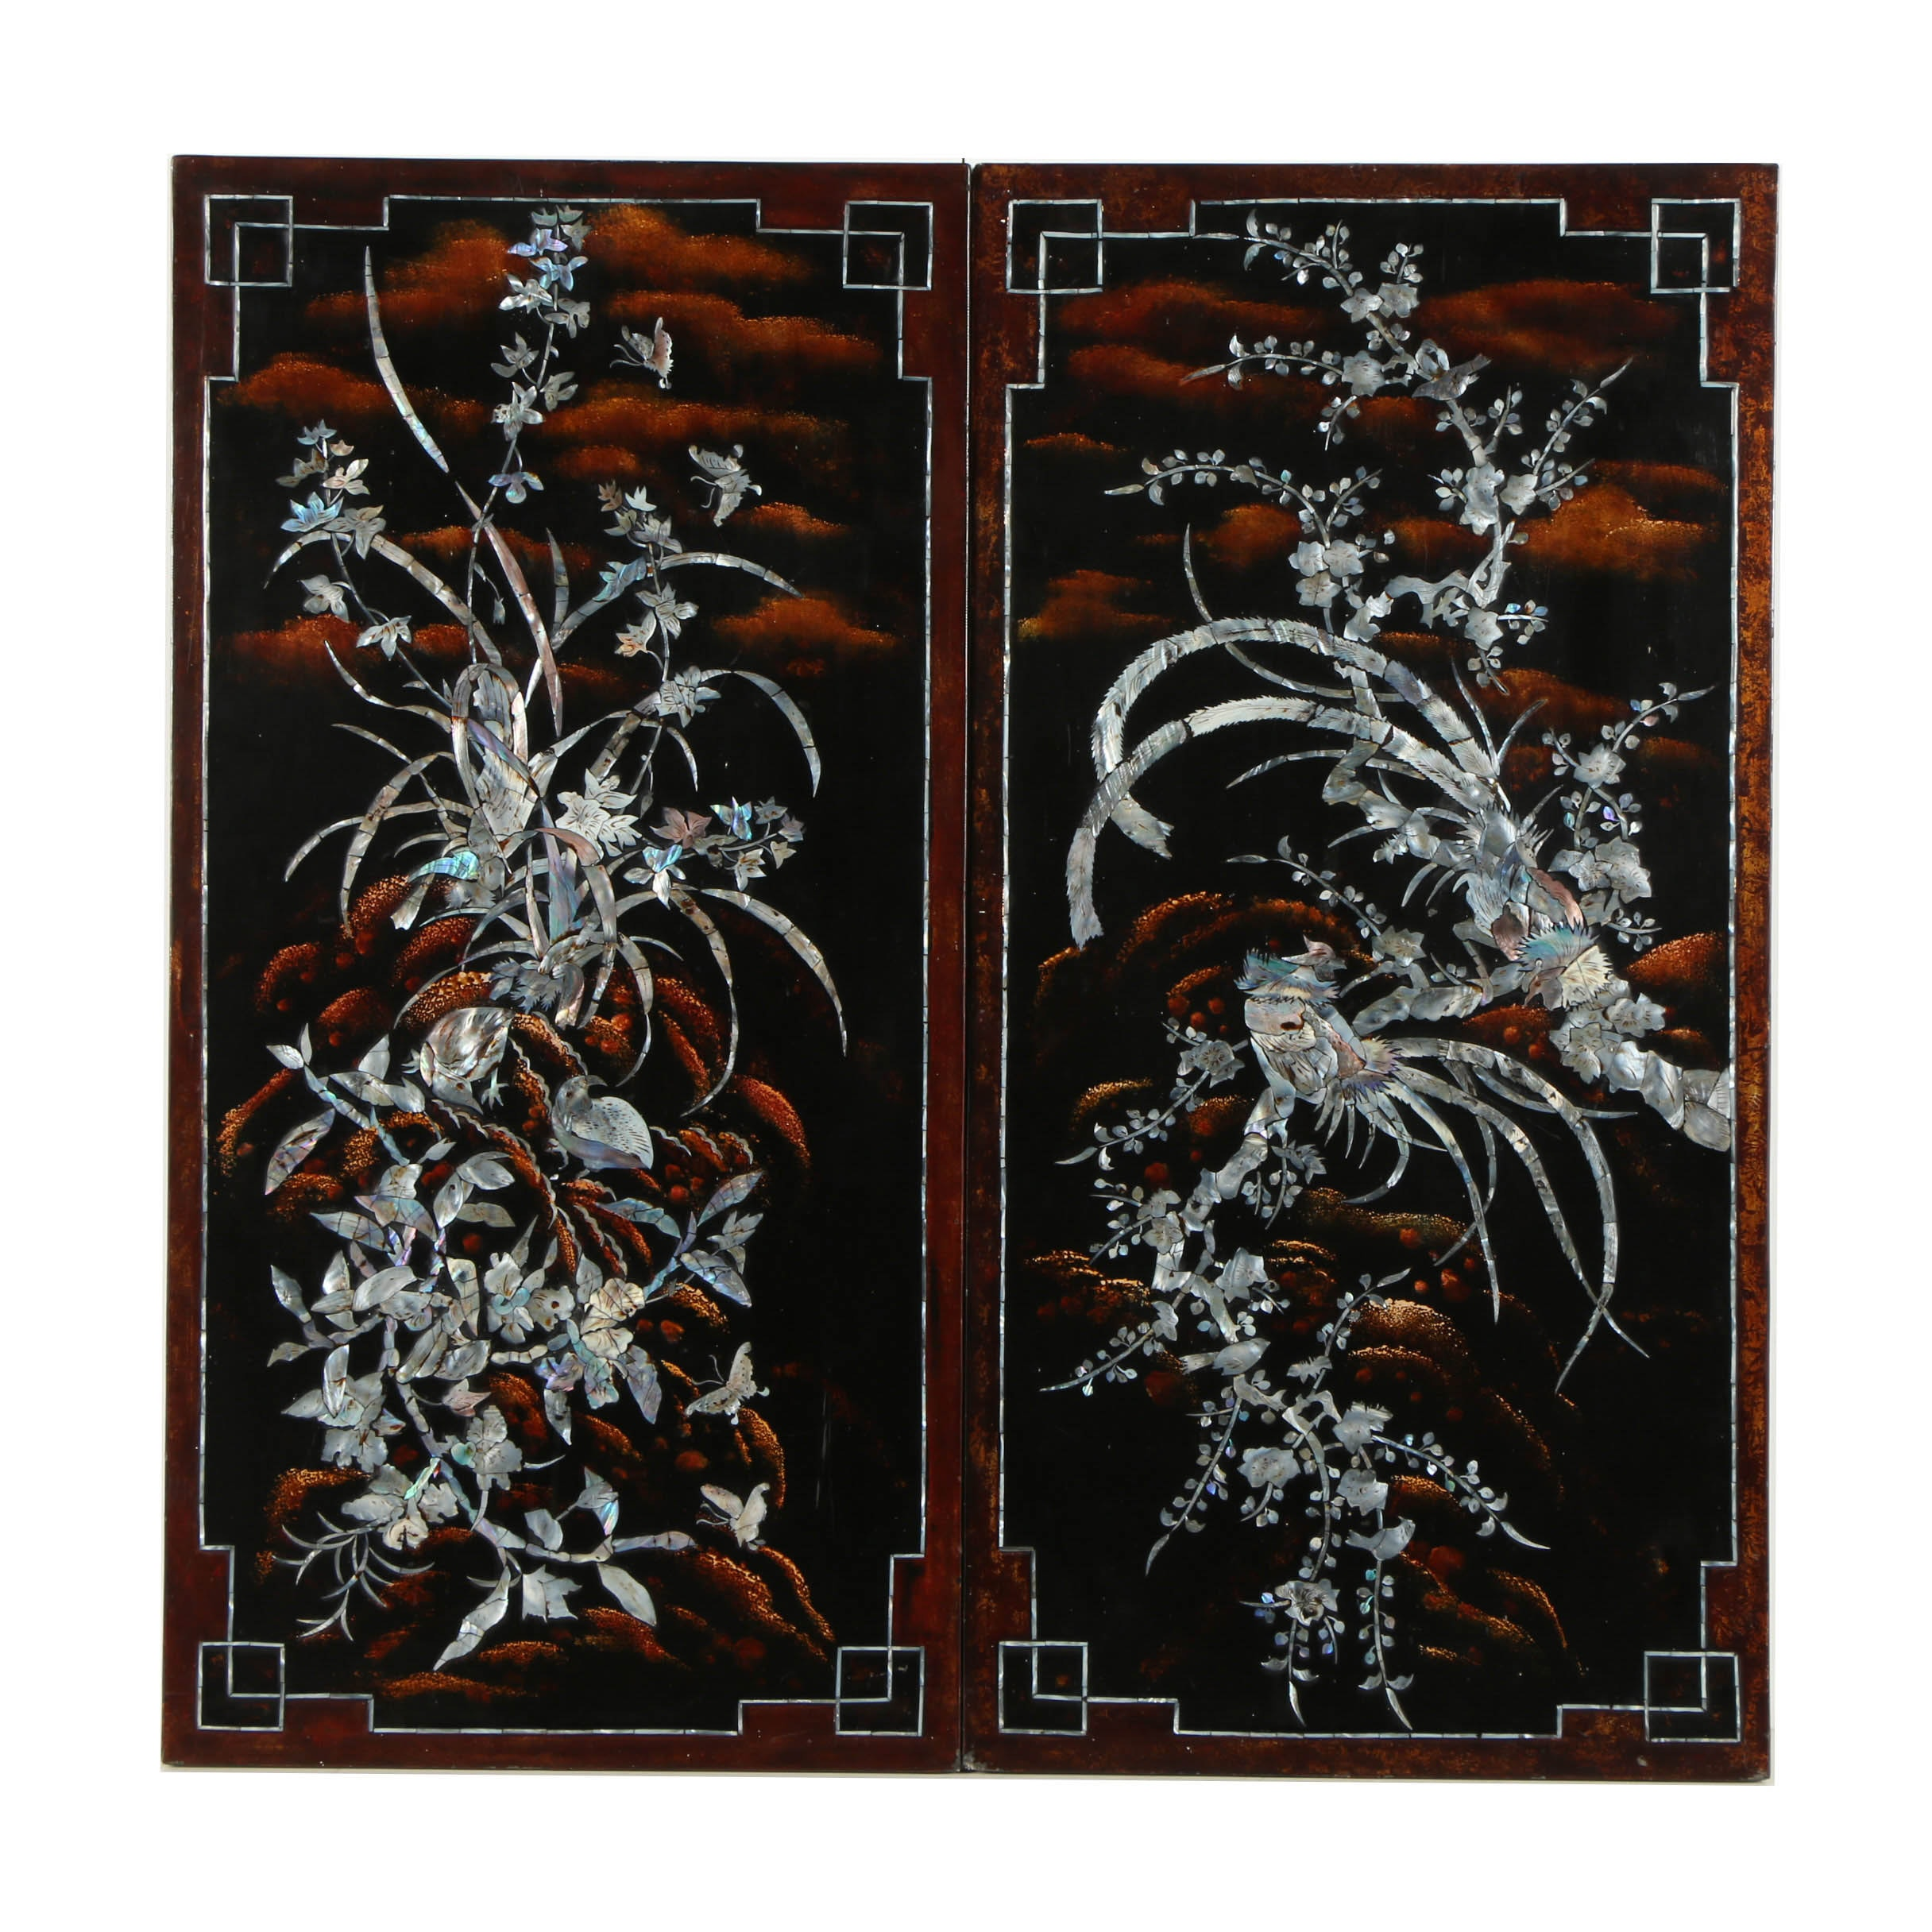 Japanese Lacquer Wooden Panels of Birds